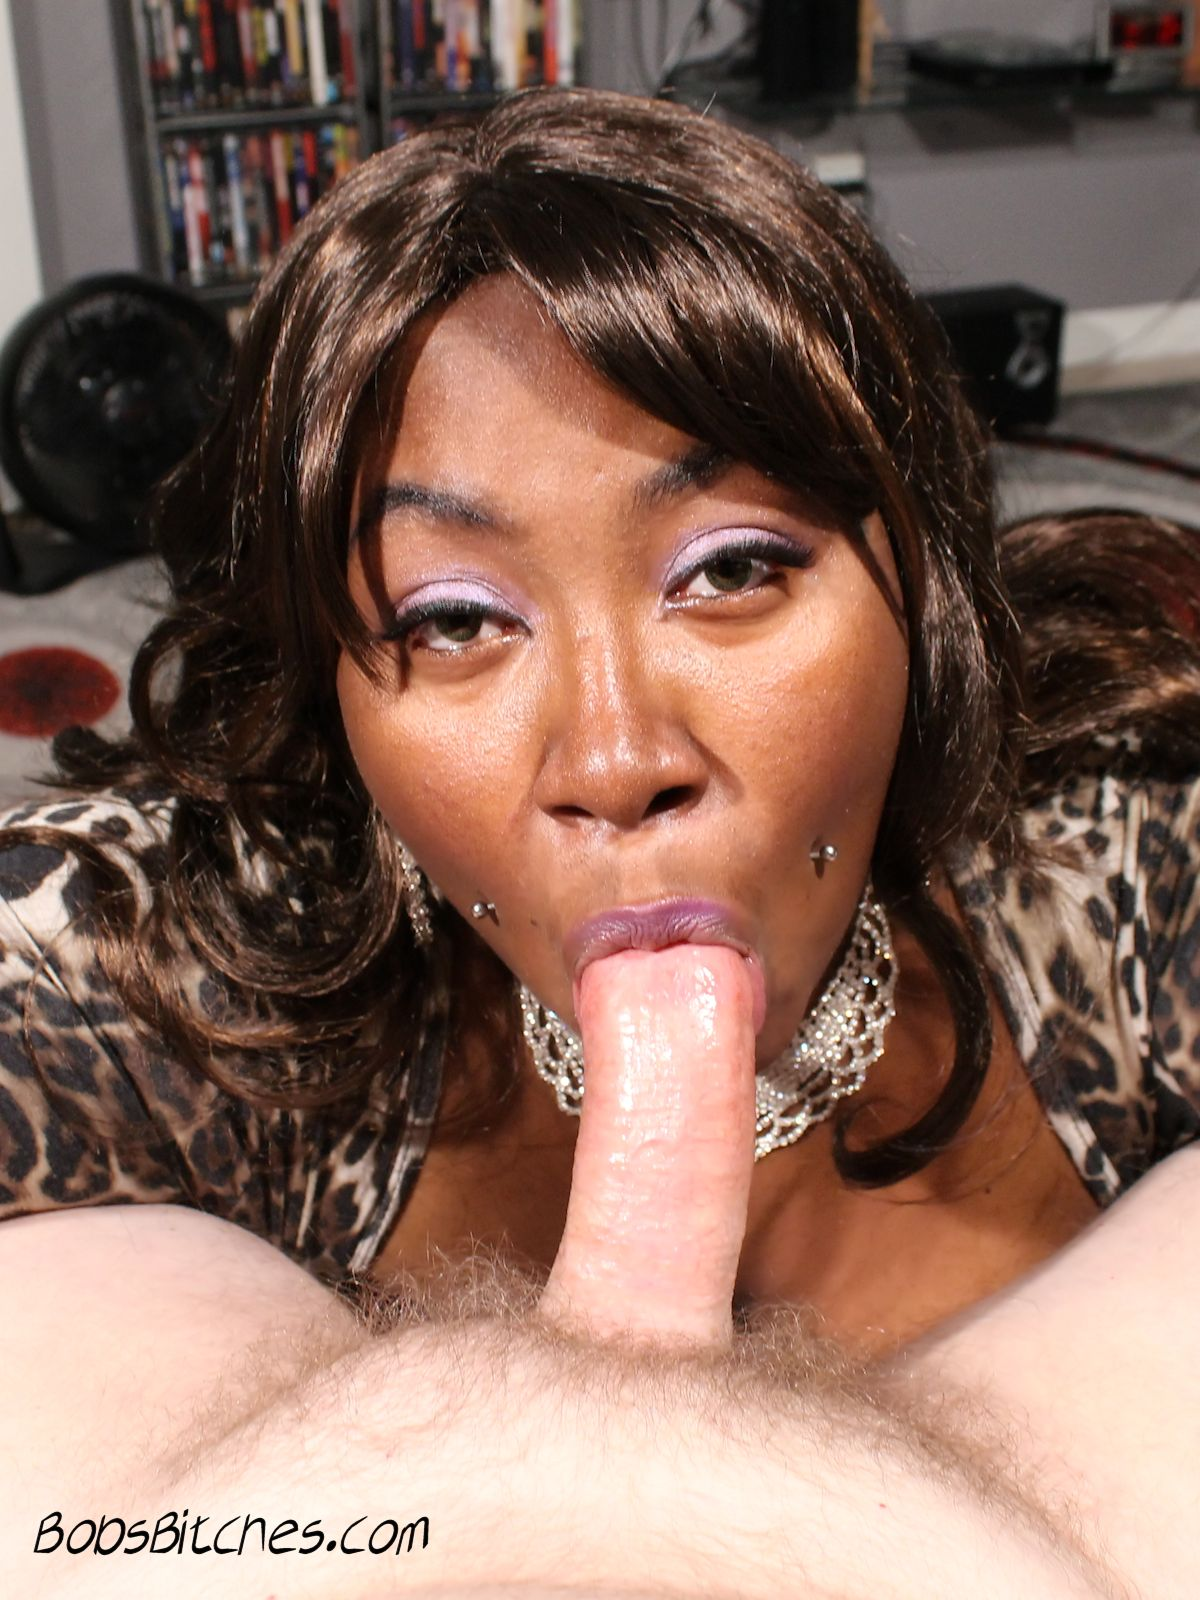 Ebony milf sucks a big white cock.